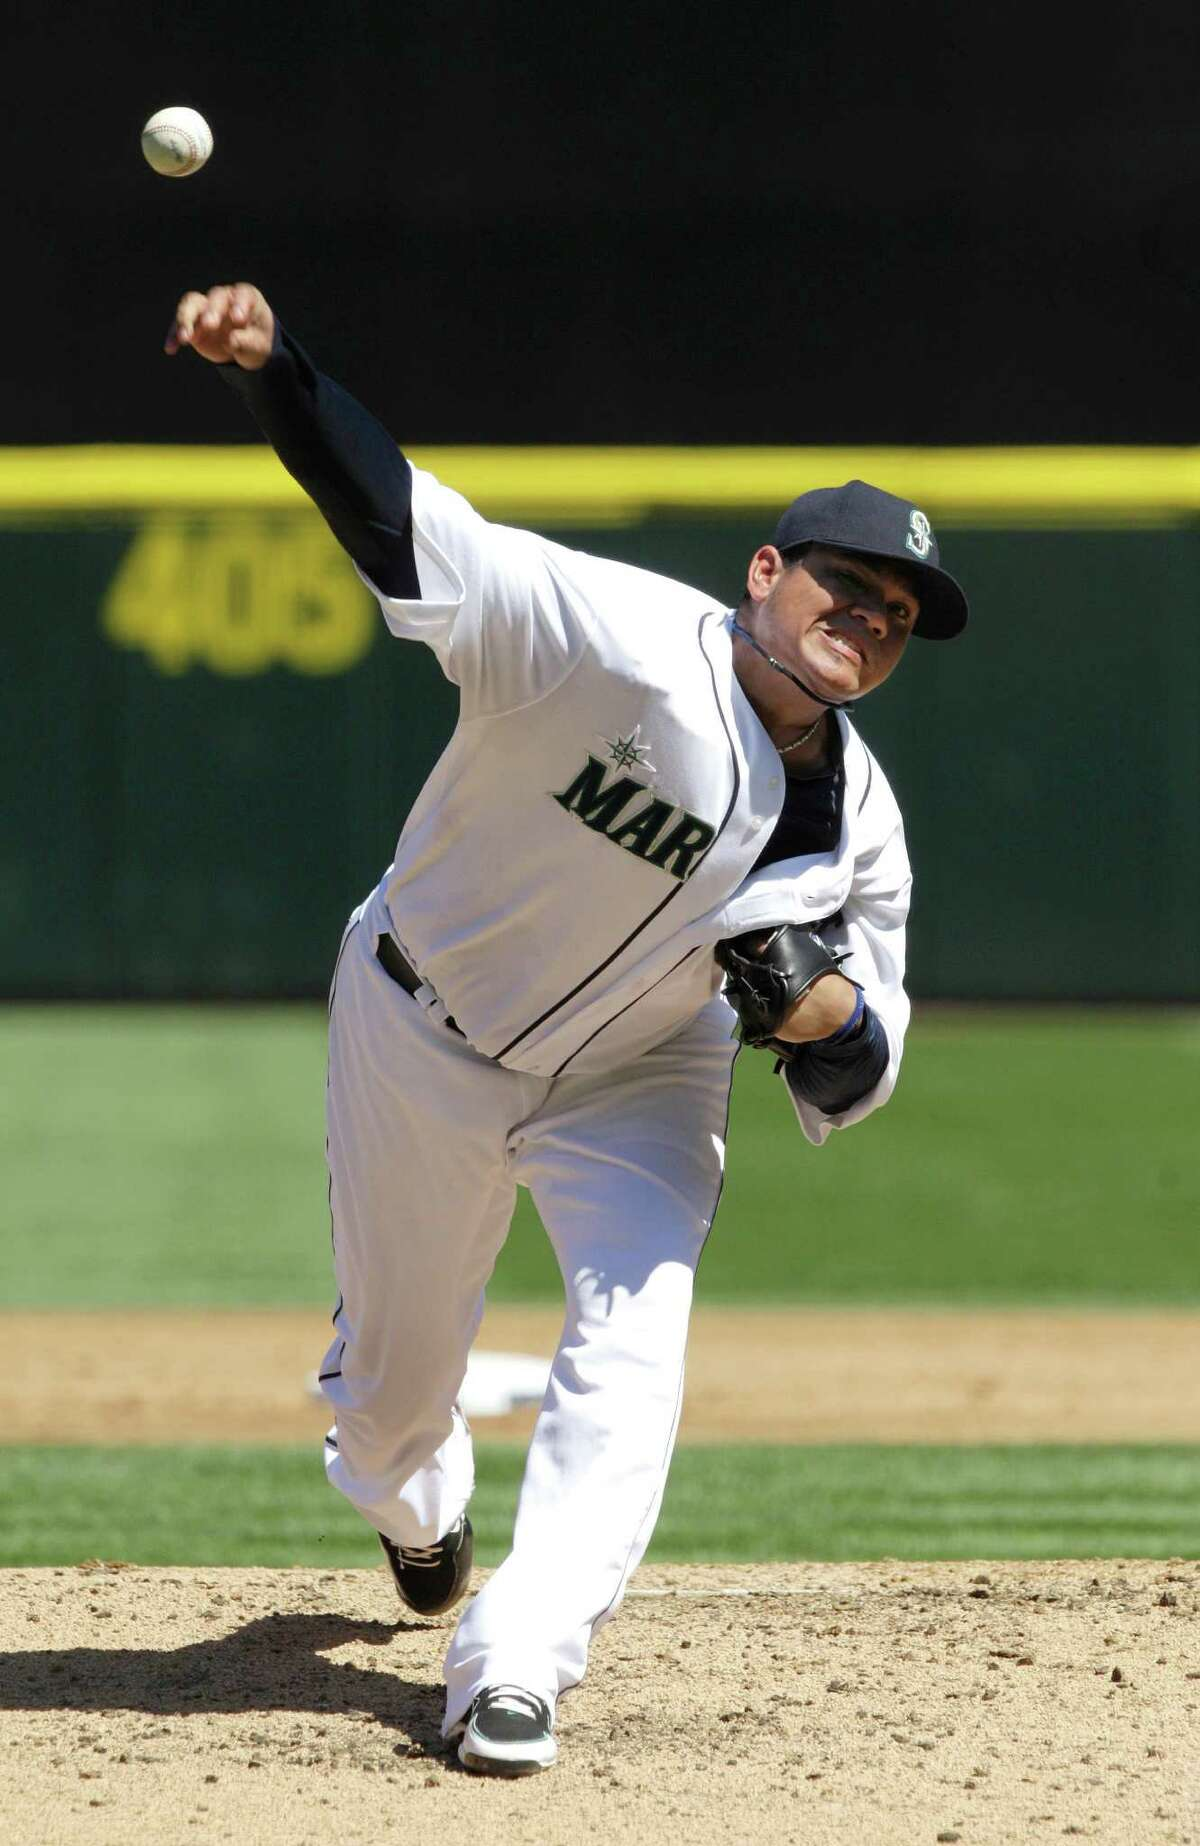 Seattle Mariners starting pitcher Felix Hernandez throws to a Tampa Bay Rays batter in the third inning of a baseball game Wednesday in Seattle. (AP Photo/Ted S. Warren)